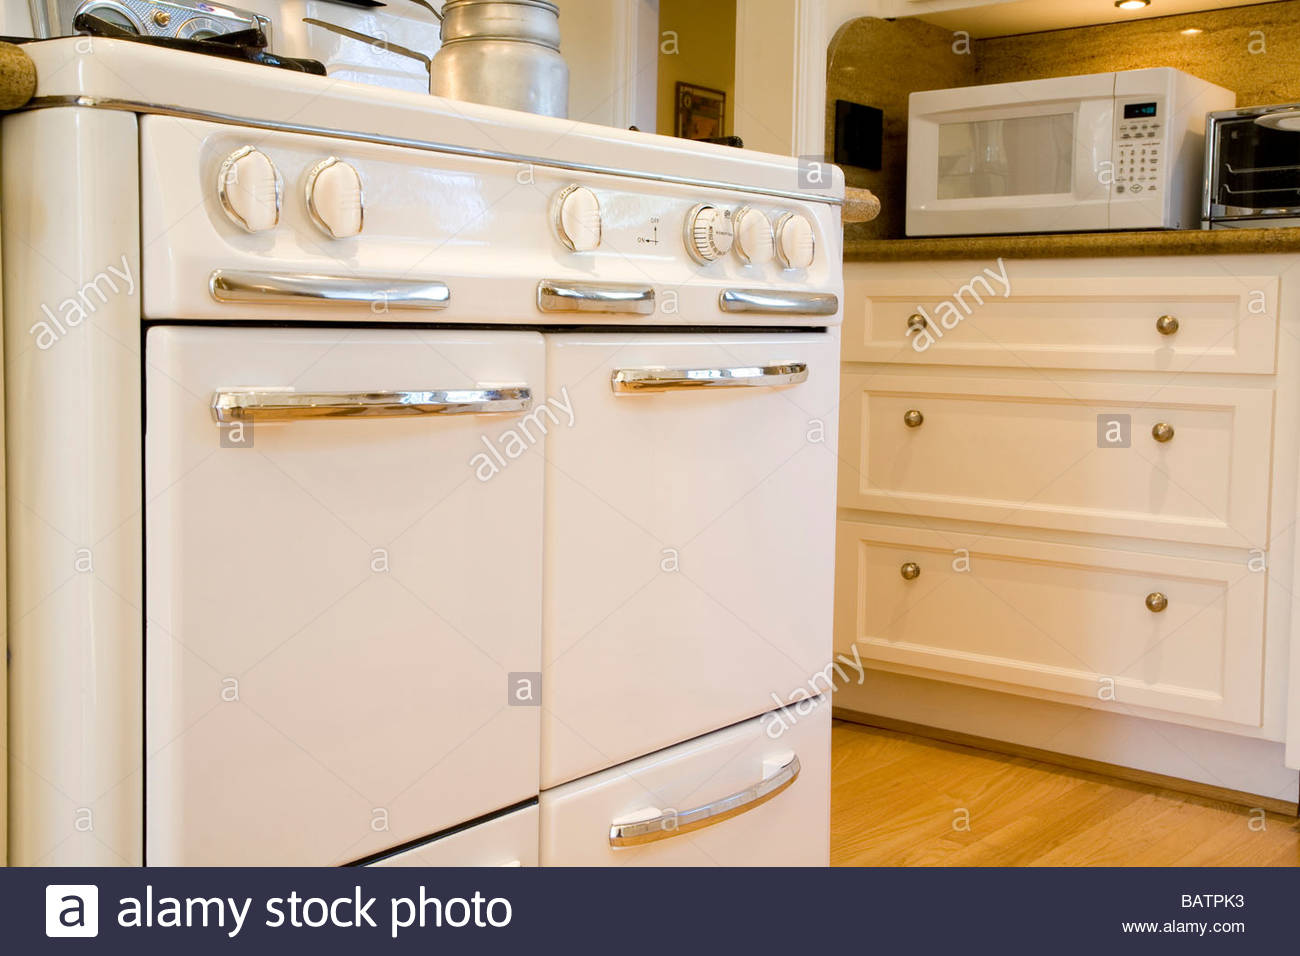 Old fashioned oven in country style kitchen stock photo for Old country style kitchen